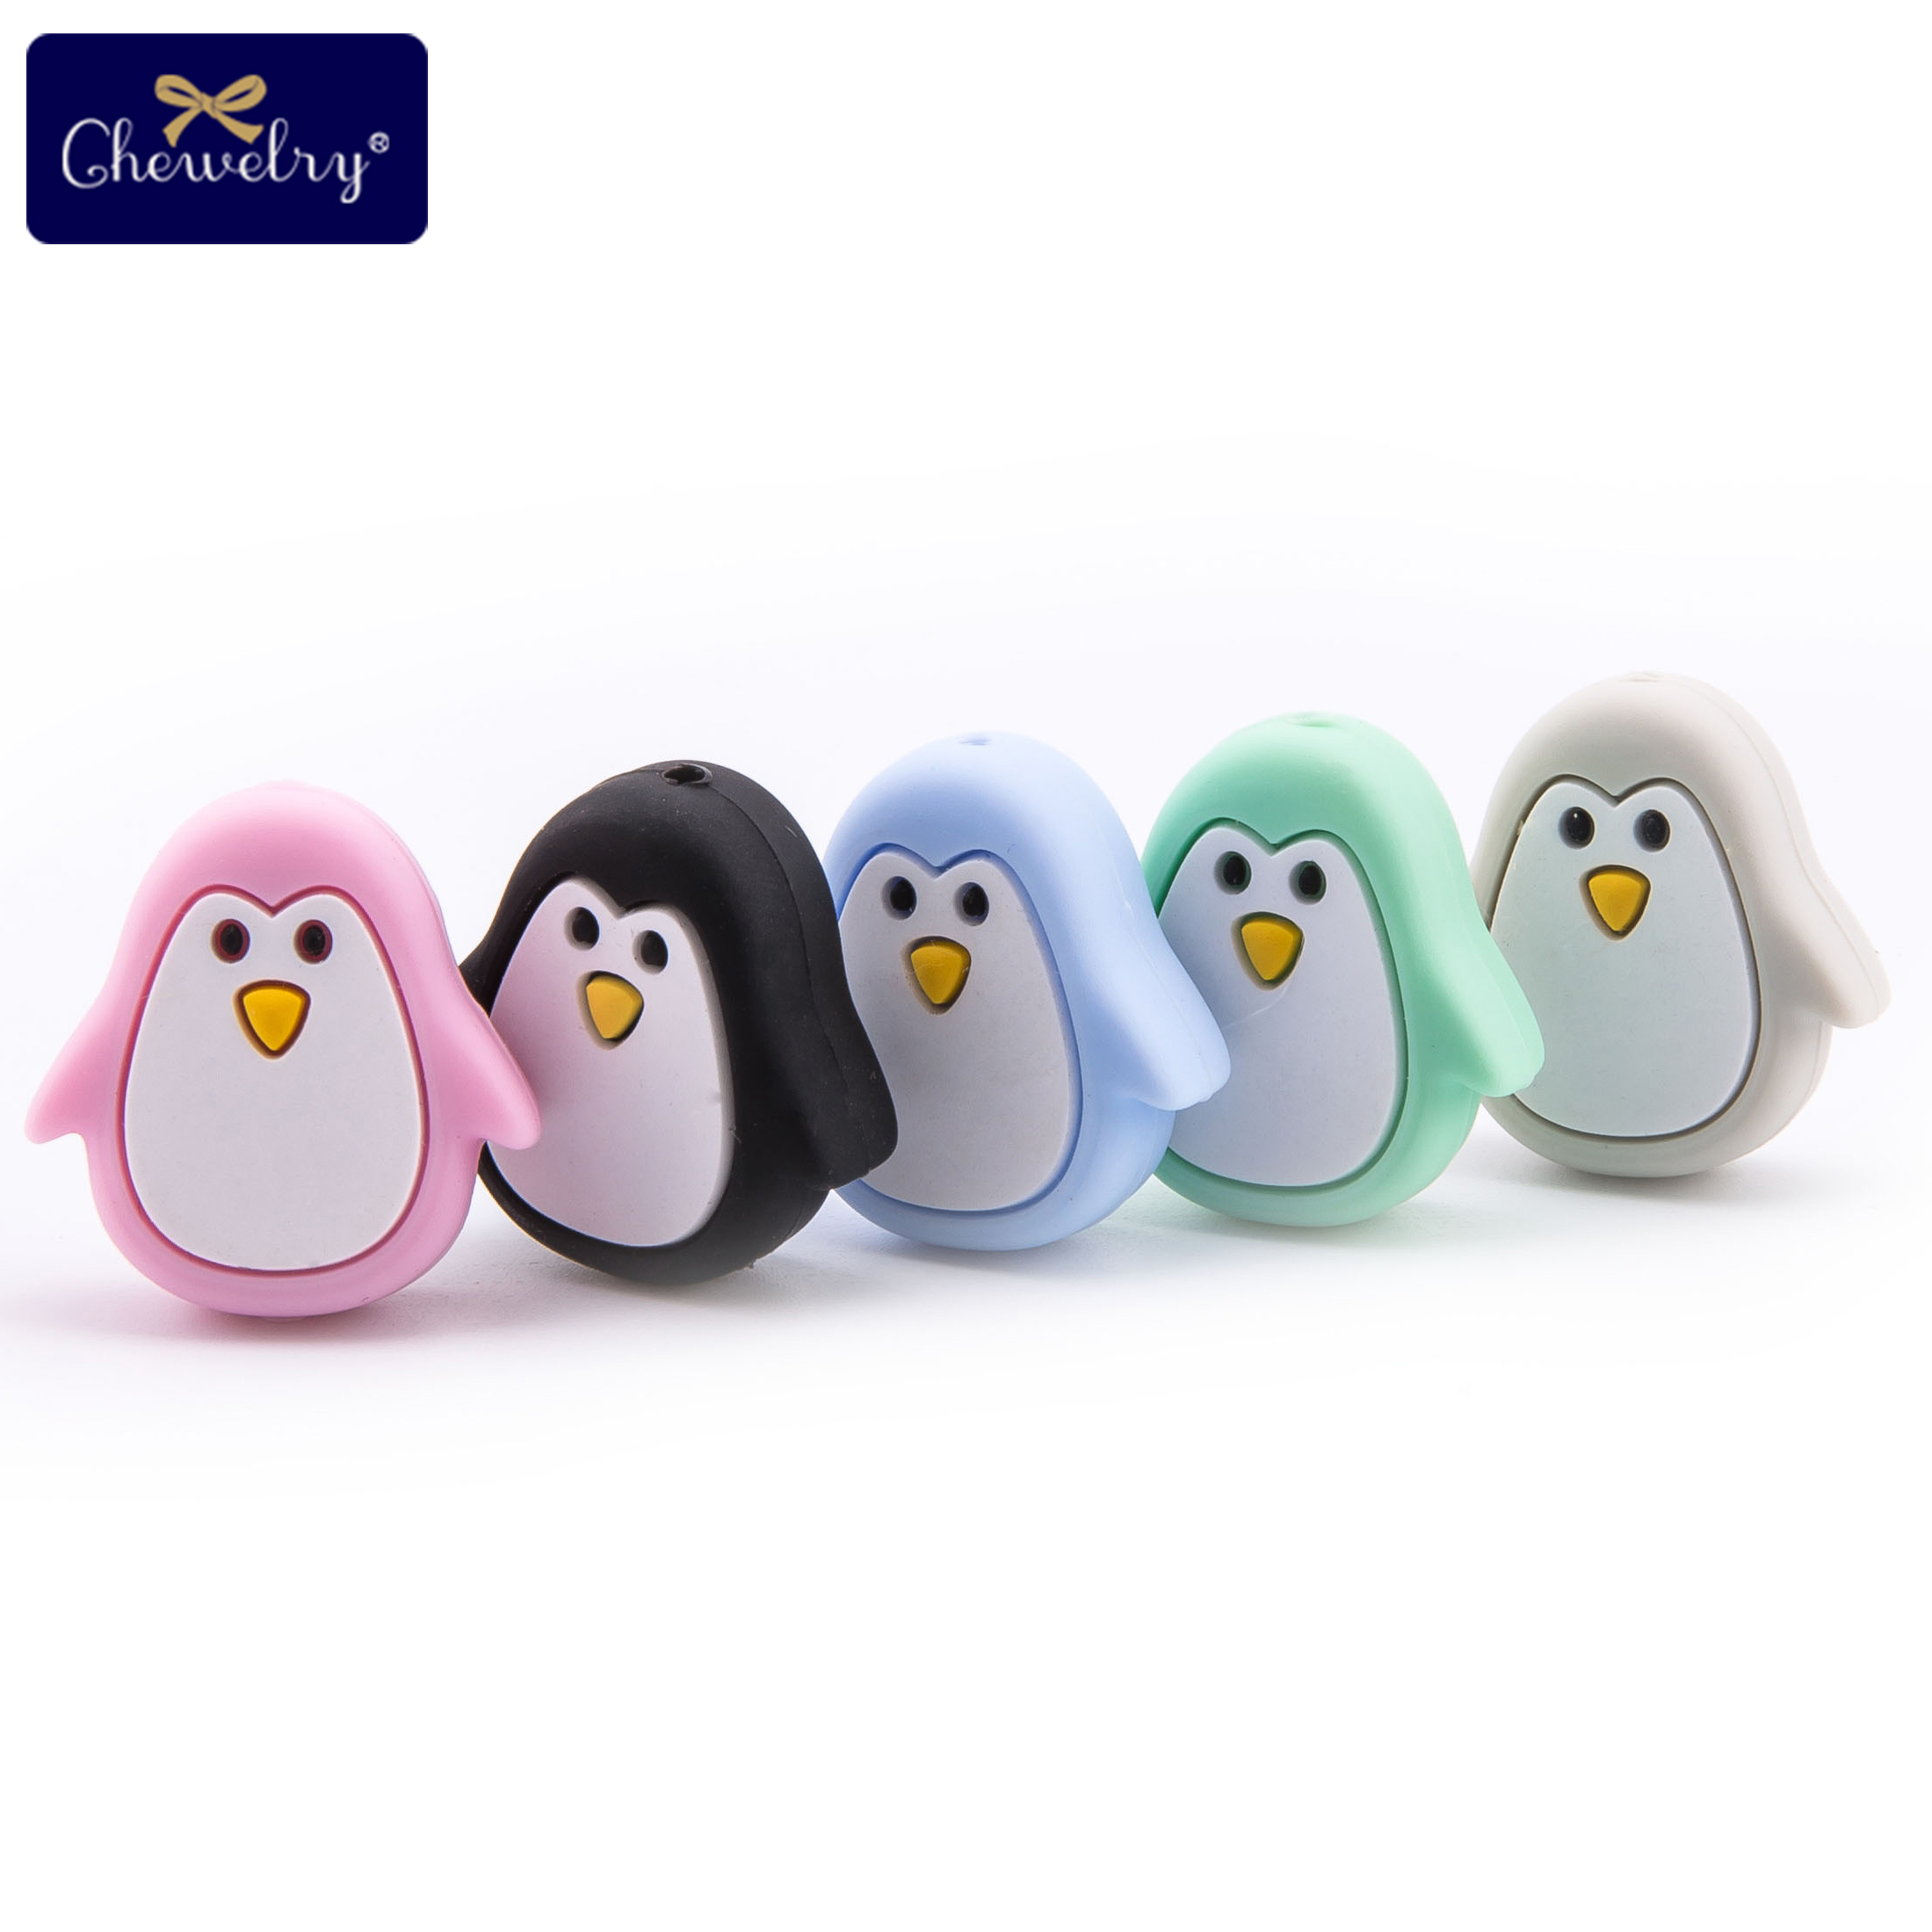 5 Pc Baby Animal Silicone Teether Bead Baby Holder Chain Food Grade Perle Silicone Beads Diy Pacifier Chain Children's Goods Toy